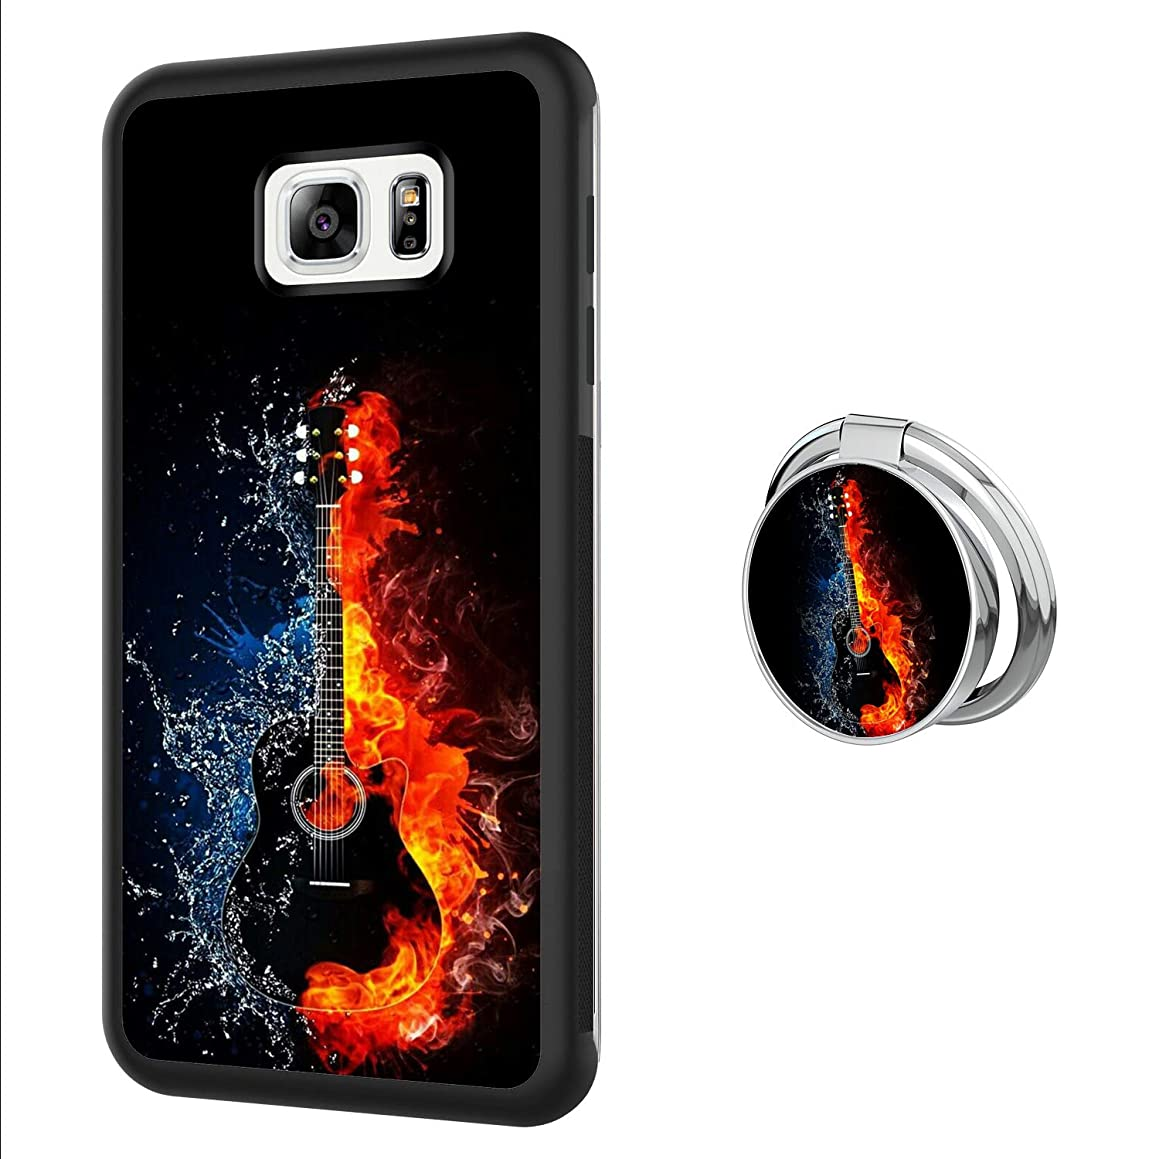 Designed Black Guitar Samsung Galaxy S6 Case with Buckle Ring 360° Rotatable Silvery Durable Ring Buckle, TPU Black Antiskid Tread Phone Case for Samsung Galaxy S6